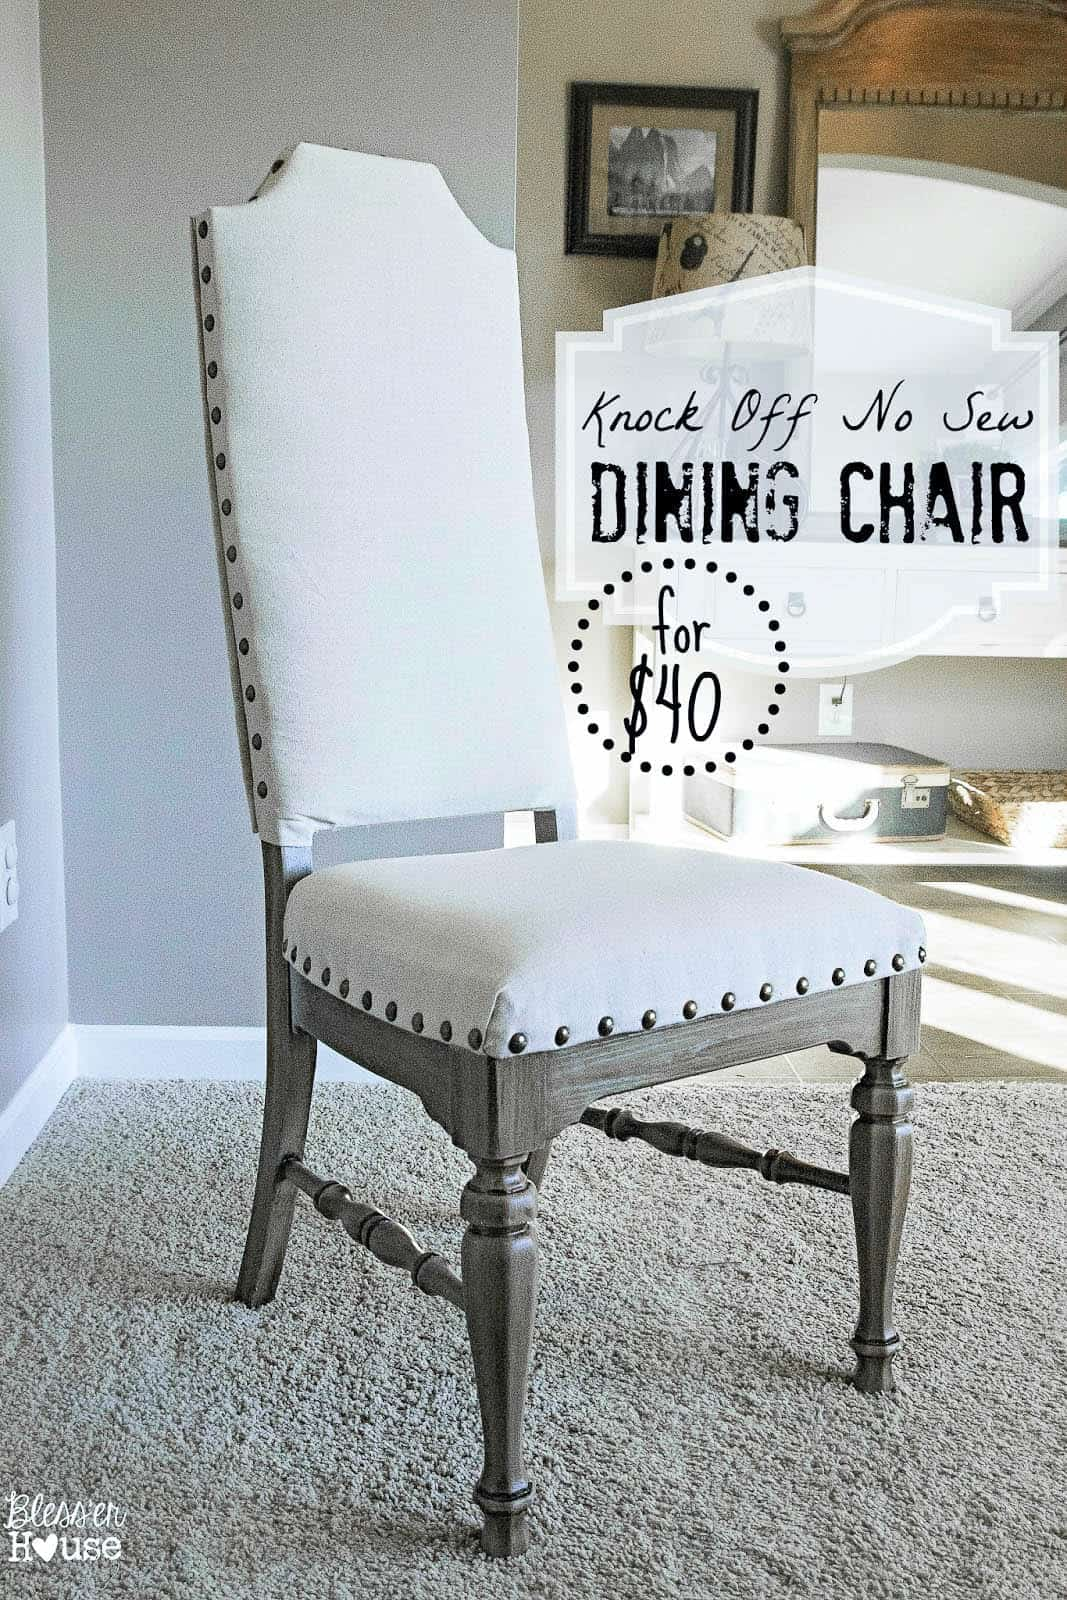 Refinished dining room chair with no-sew studded white upholstery and gray wooden base and legs on carpeted floor.